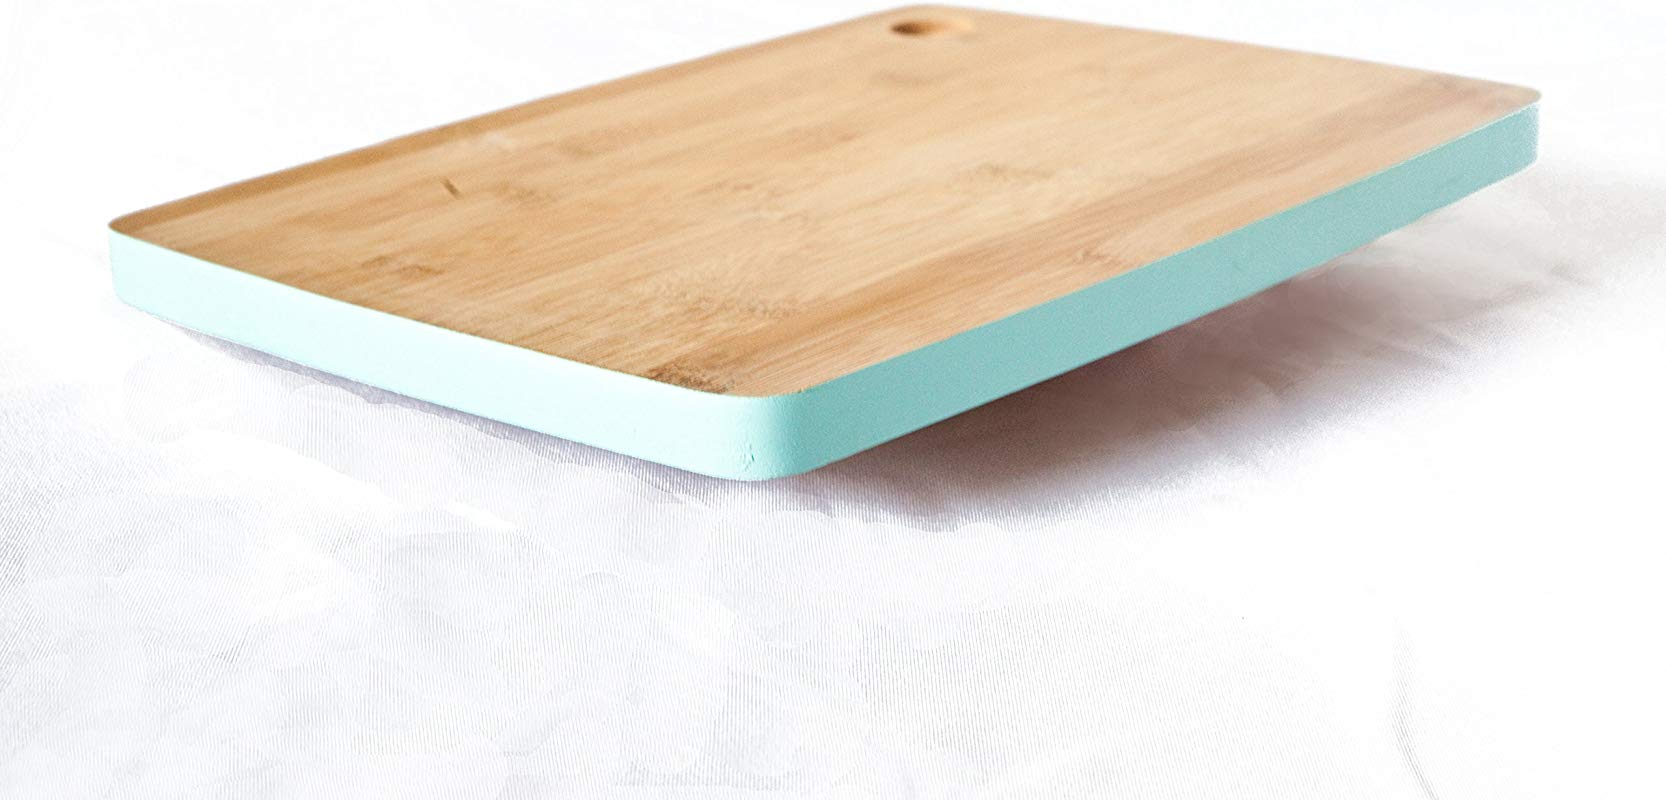 Natural Bamboo Wood Cutting Board With Teal Border Brings Simple Elegance To Your Kitchen Small Medium Size Cut Out Handle For Easy Space Saving Storage